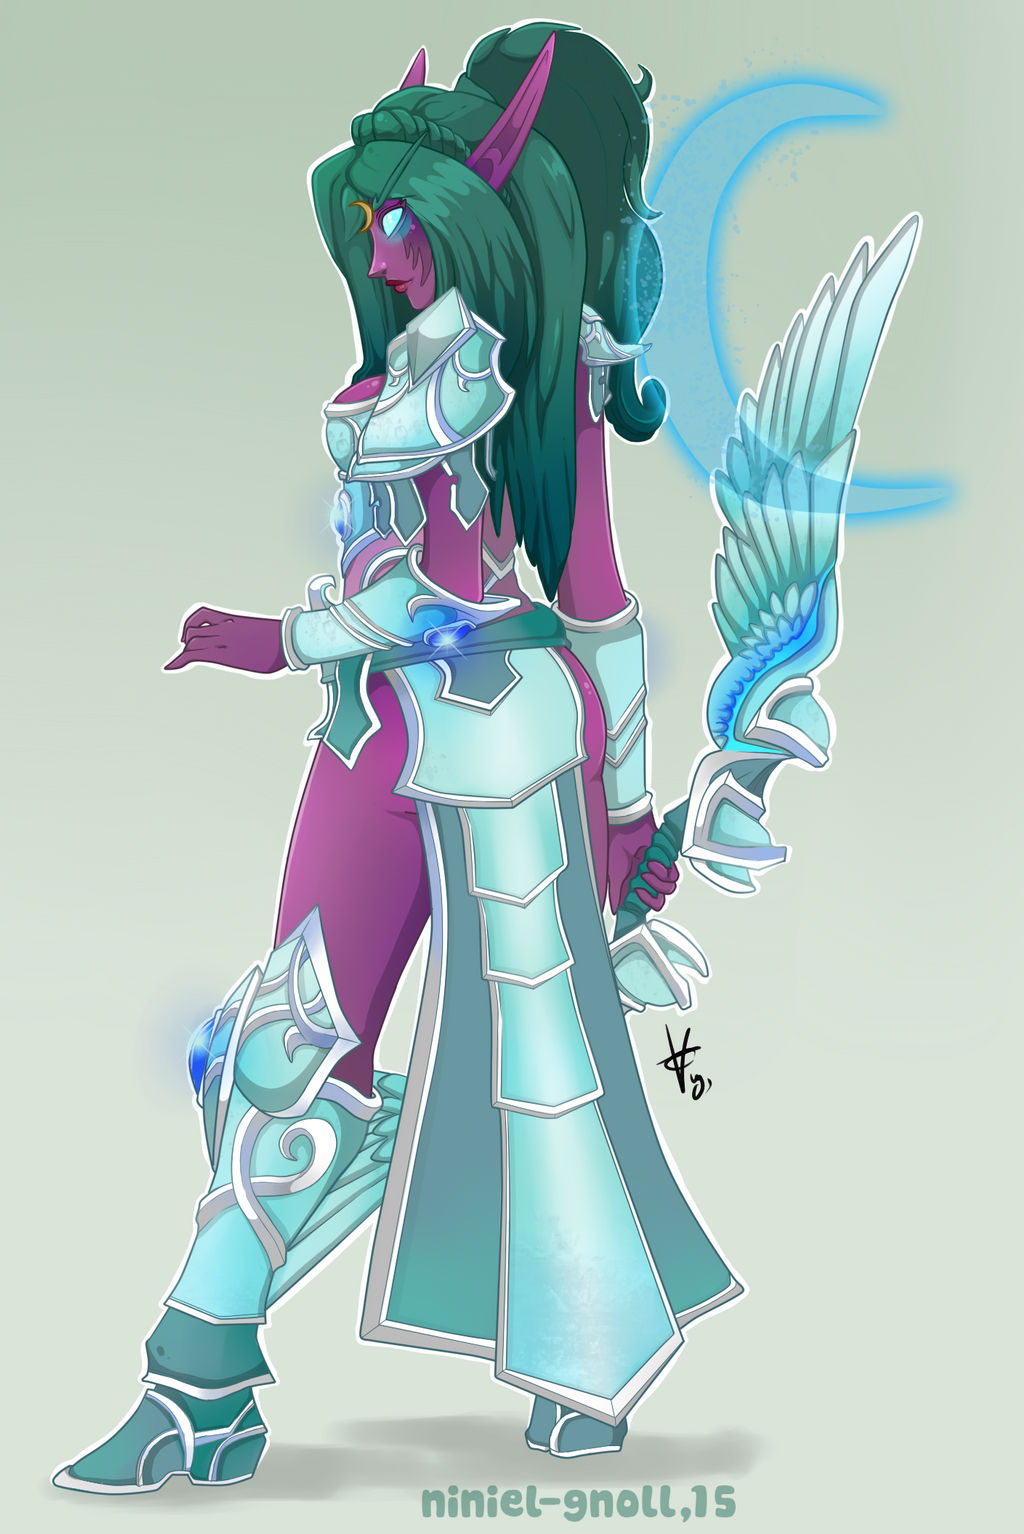 Hots Tyrande By Niniel Gnoll On Deviantart Tyrande counter picks, synergies and other matchups. hots tyrande by niniel gnoll on